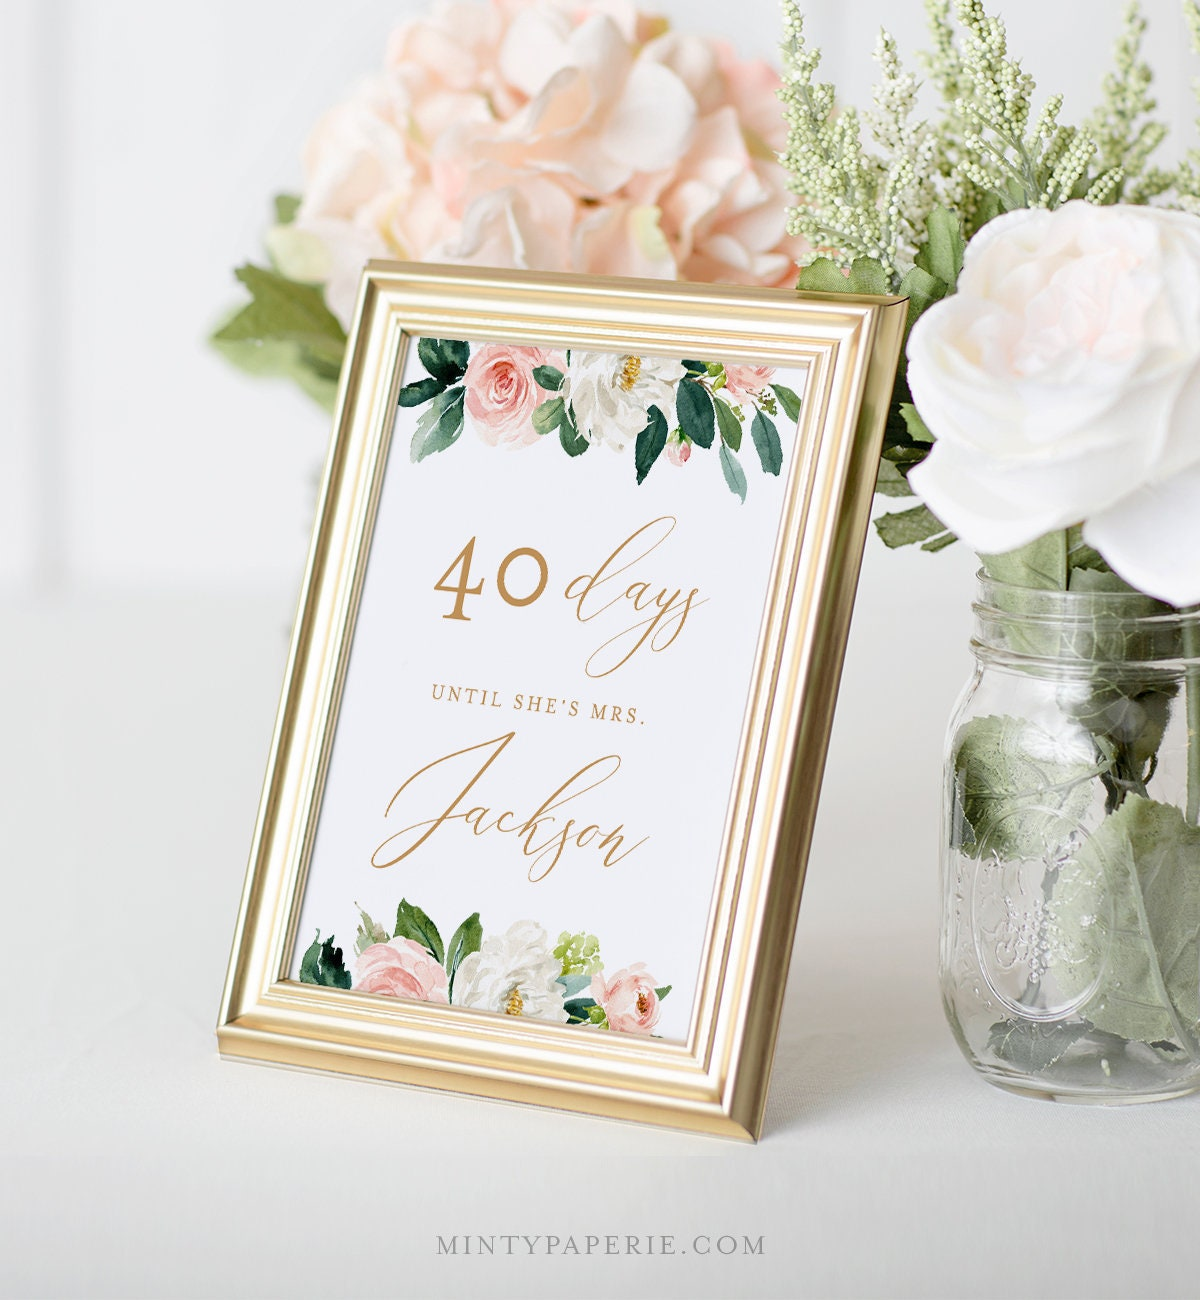 bridal shower countdown sign template days until i do sign instant download 100 editable text printable diy 5x7 8x10 043 102bss